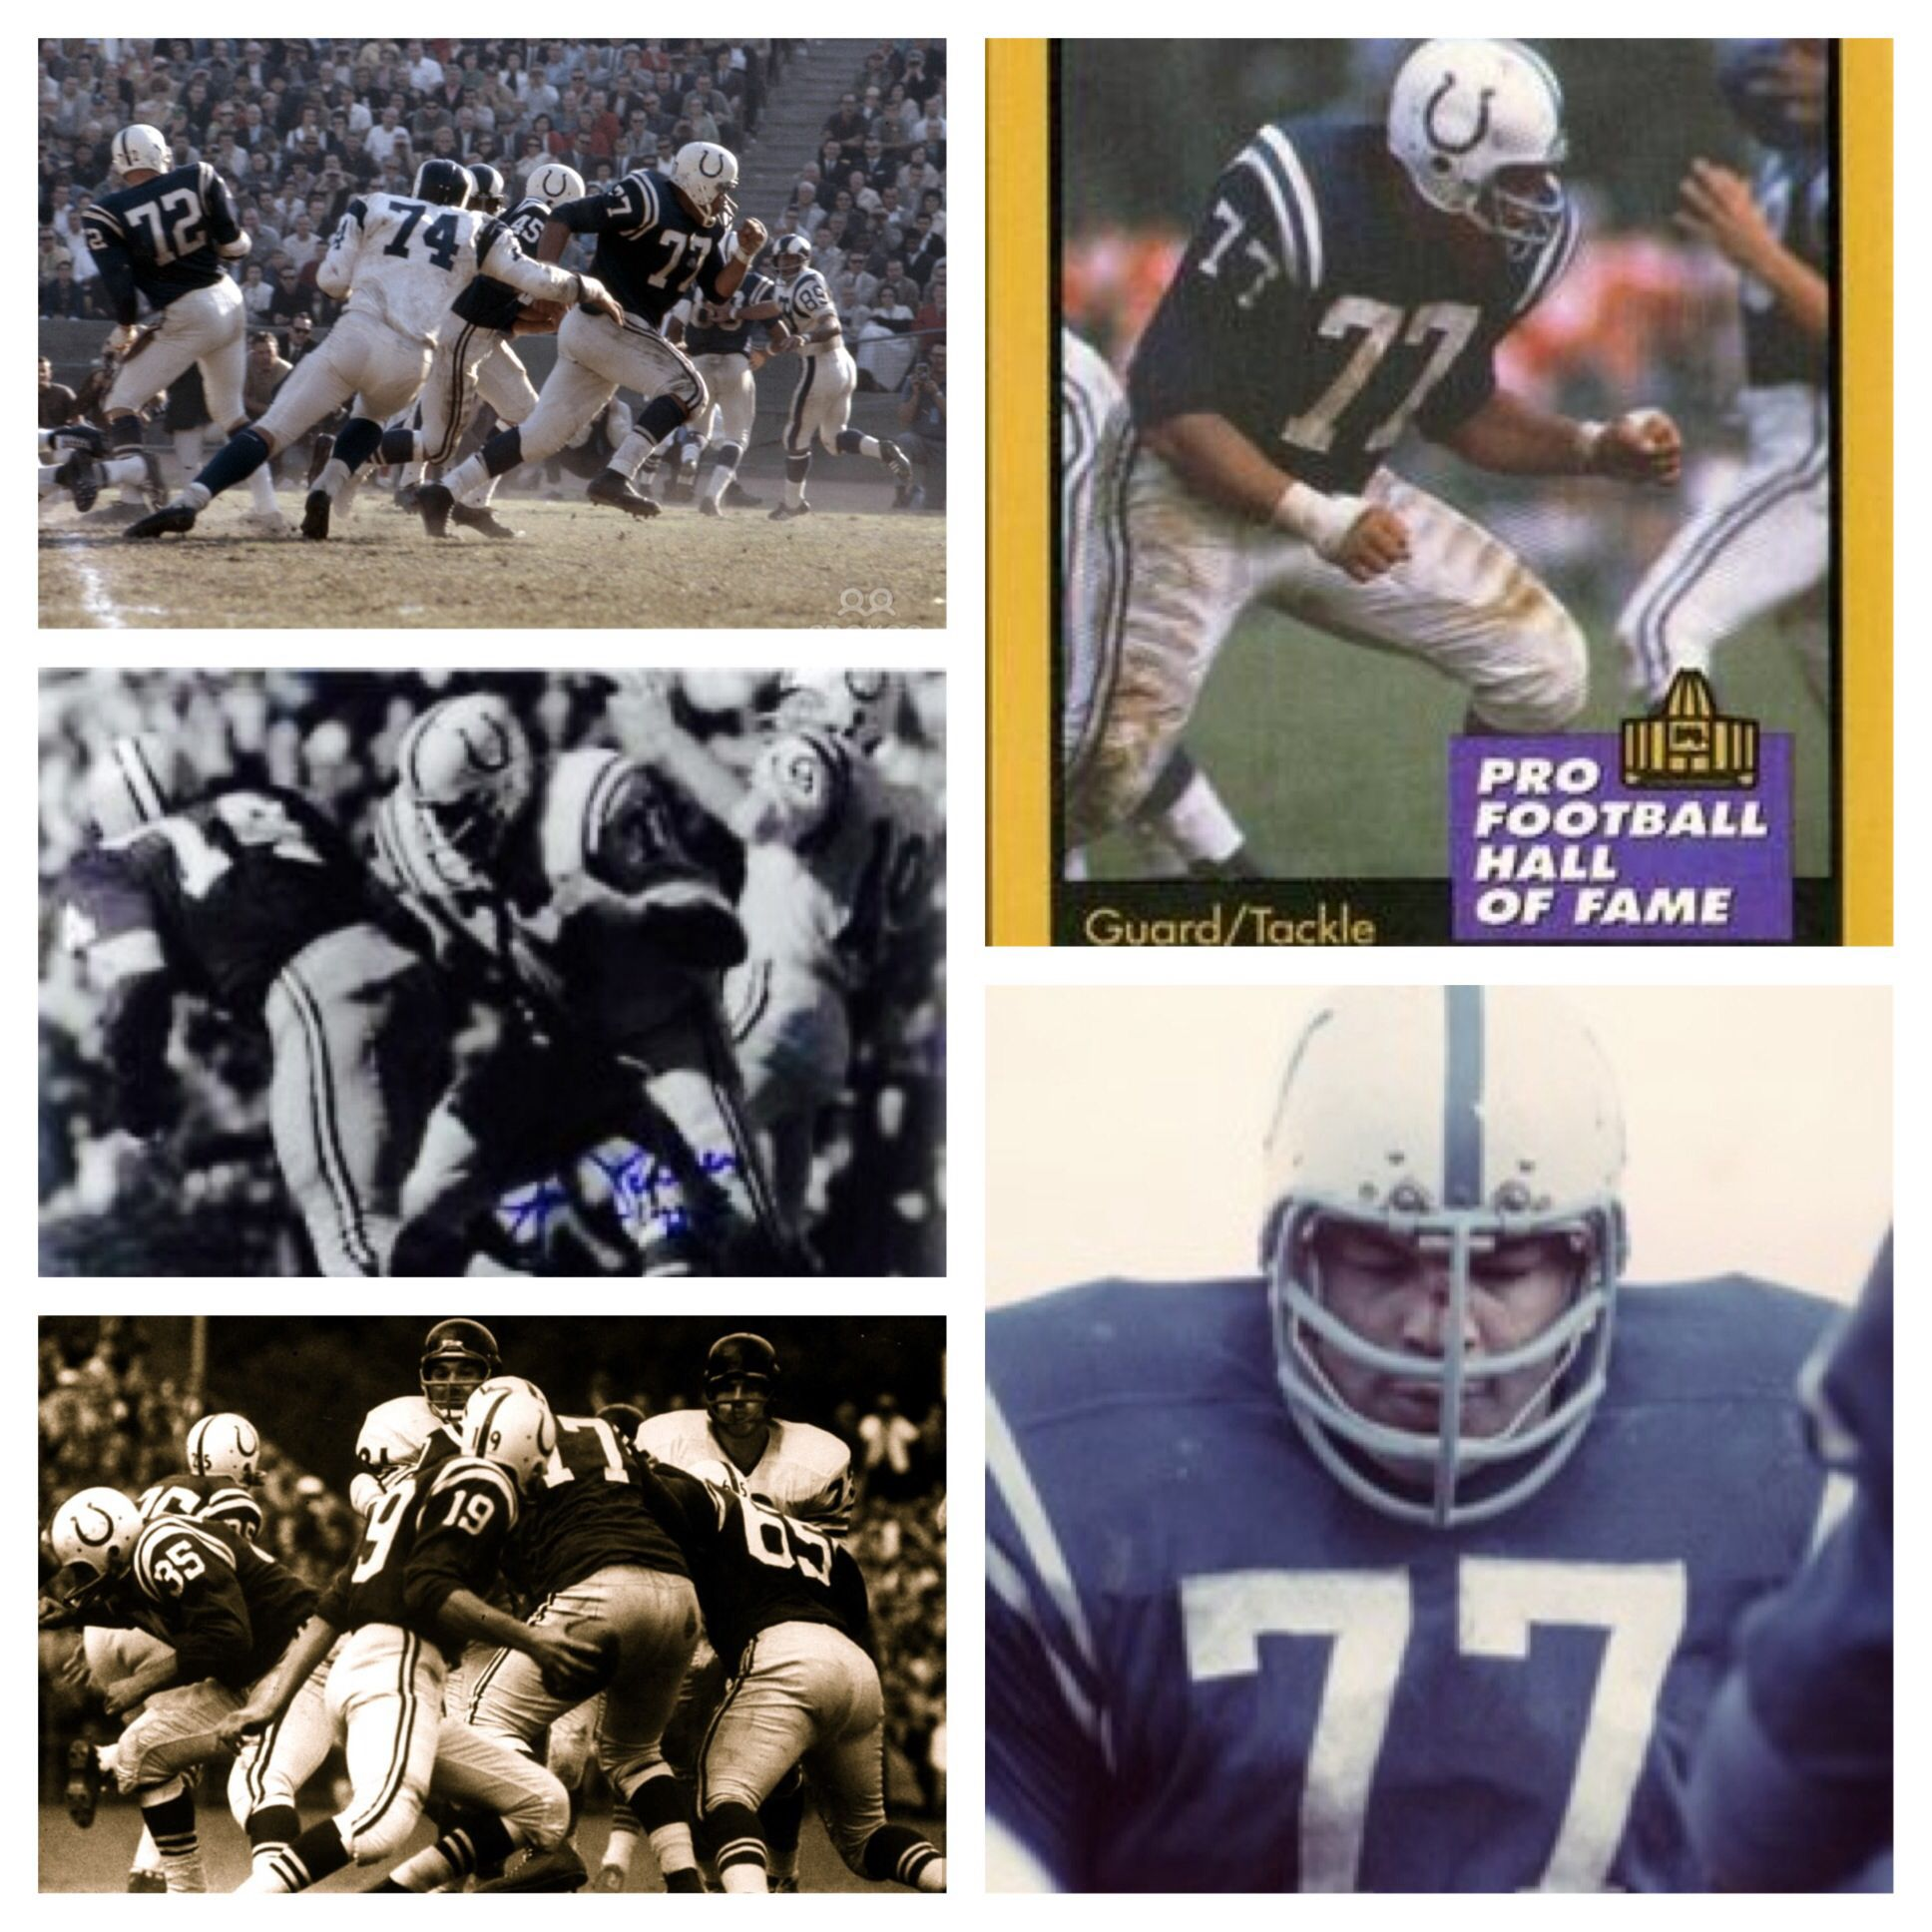 Jim parker was one of the greatest offensive lineman in